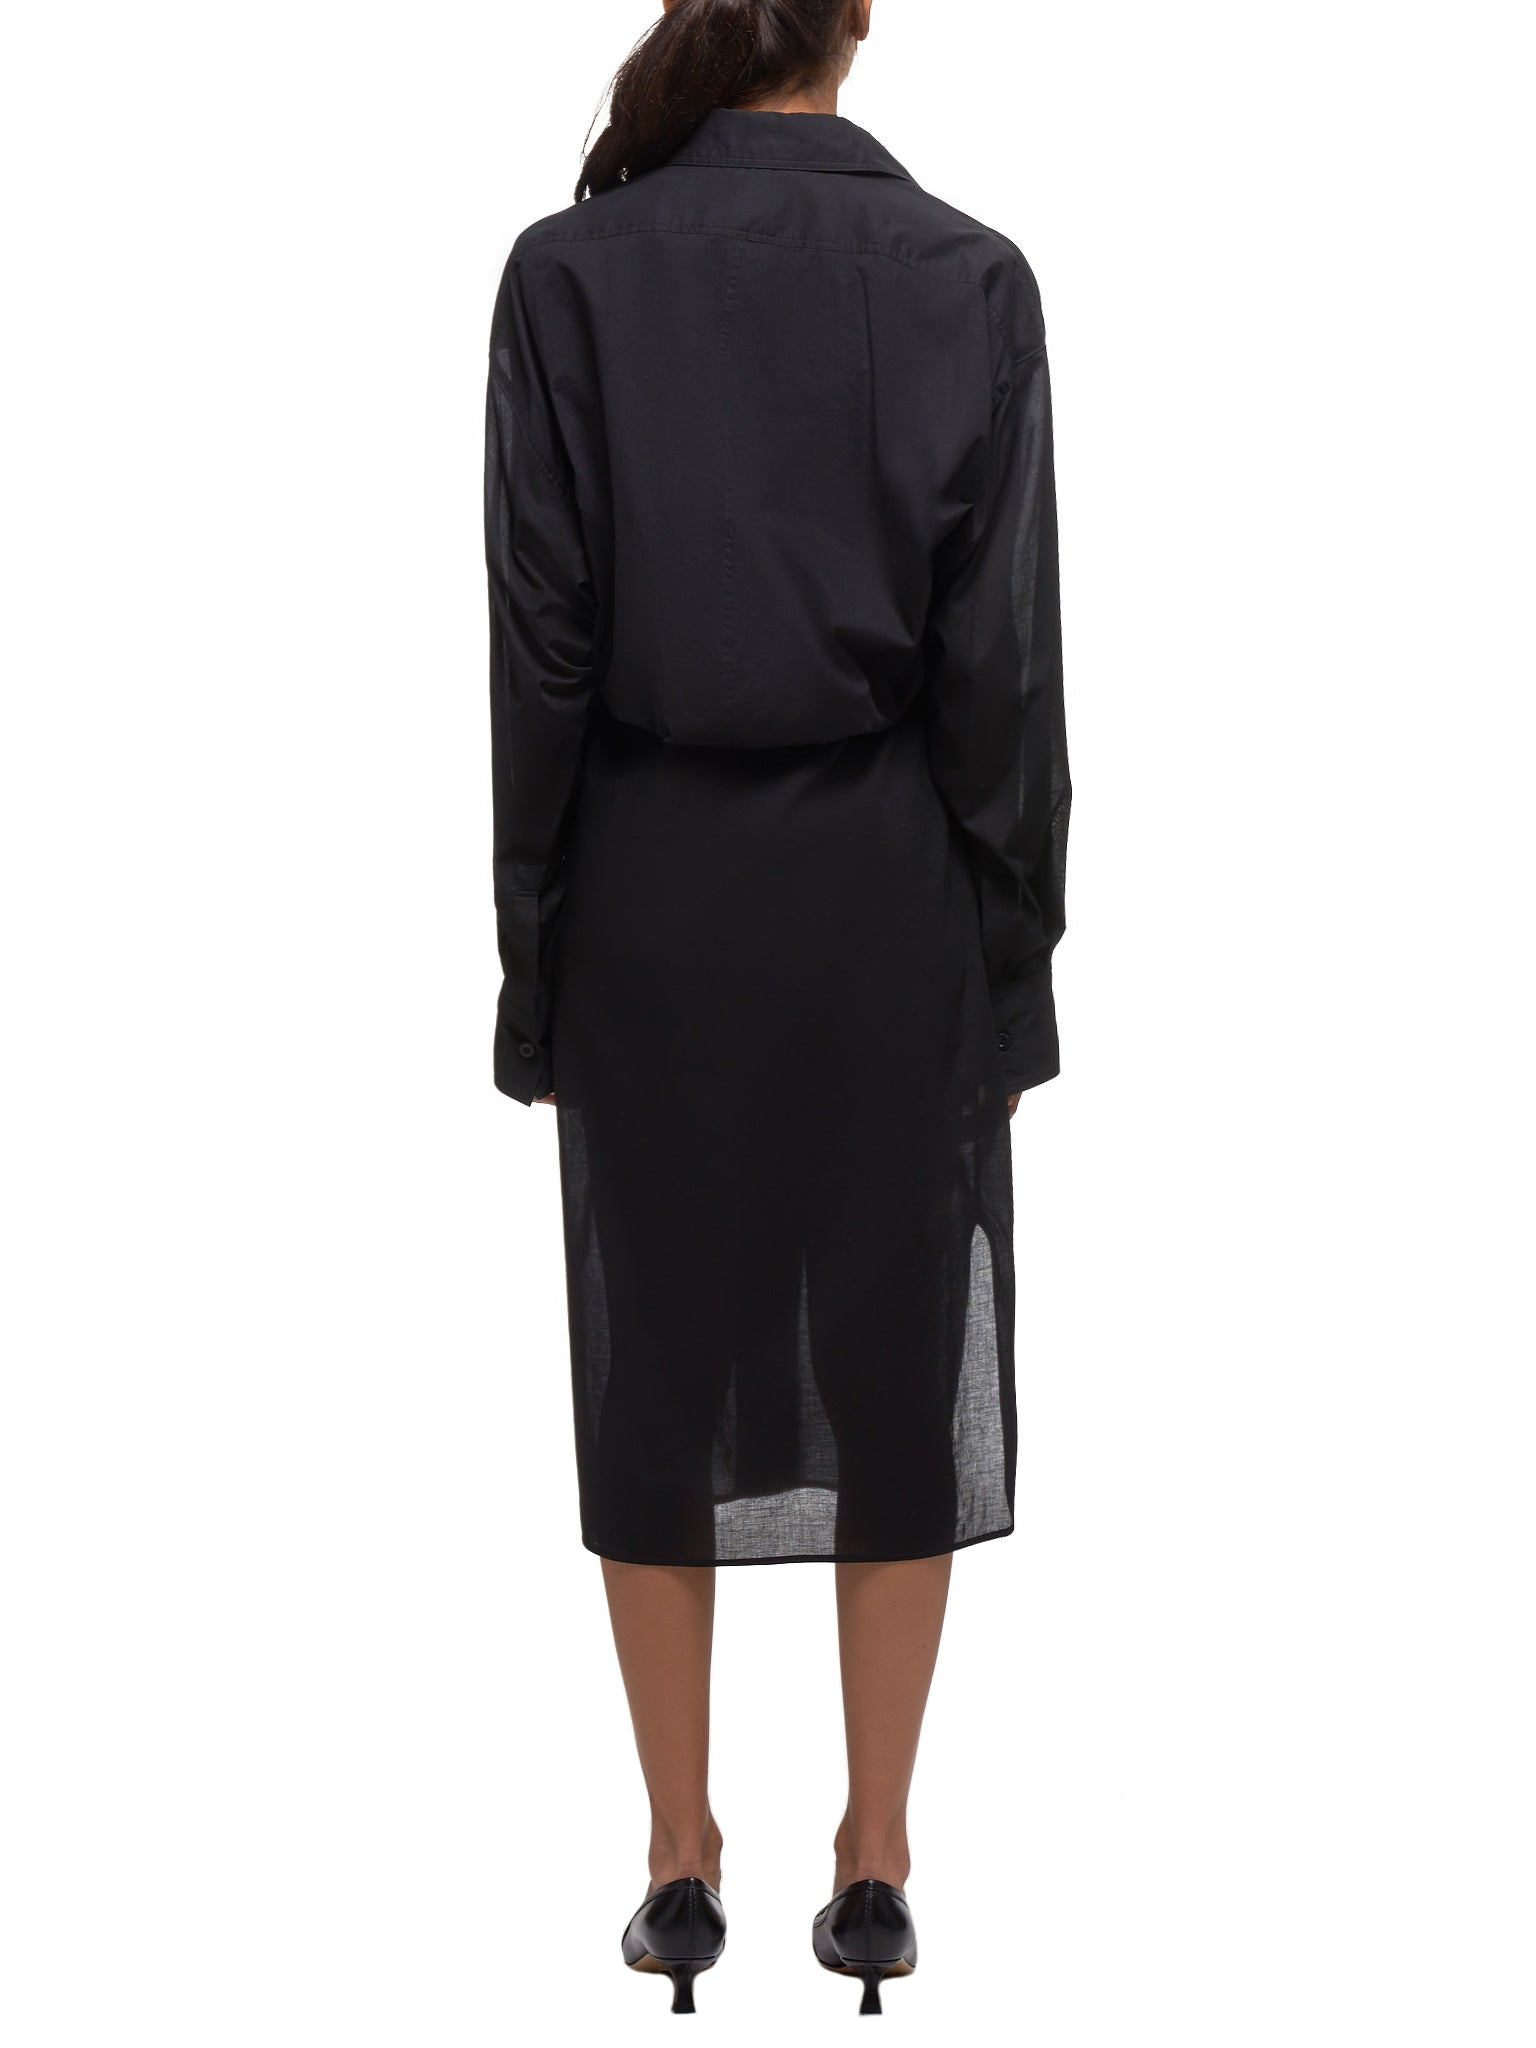 Double-Layered Shirtdress (YS-B42-040-BLACK)